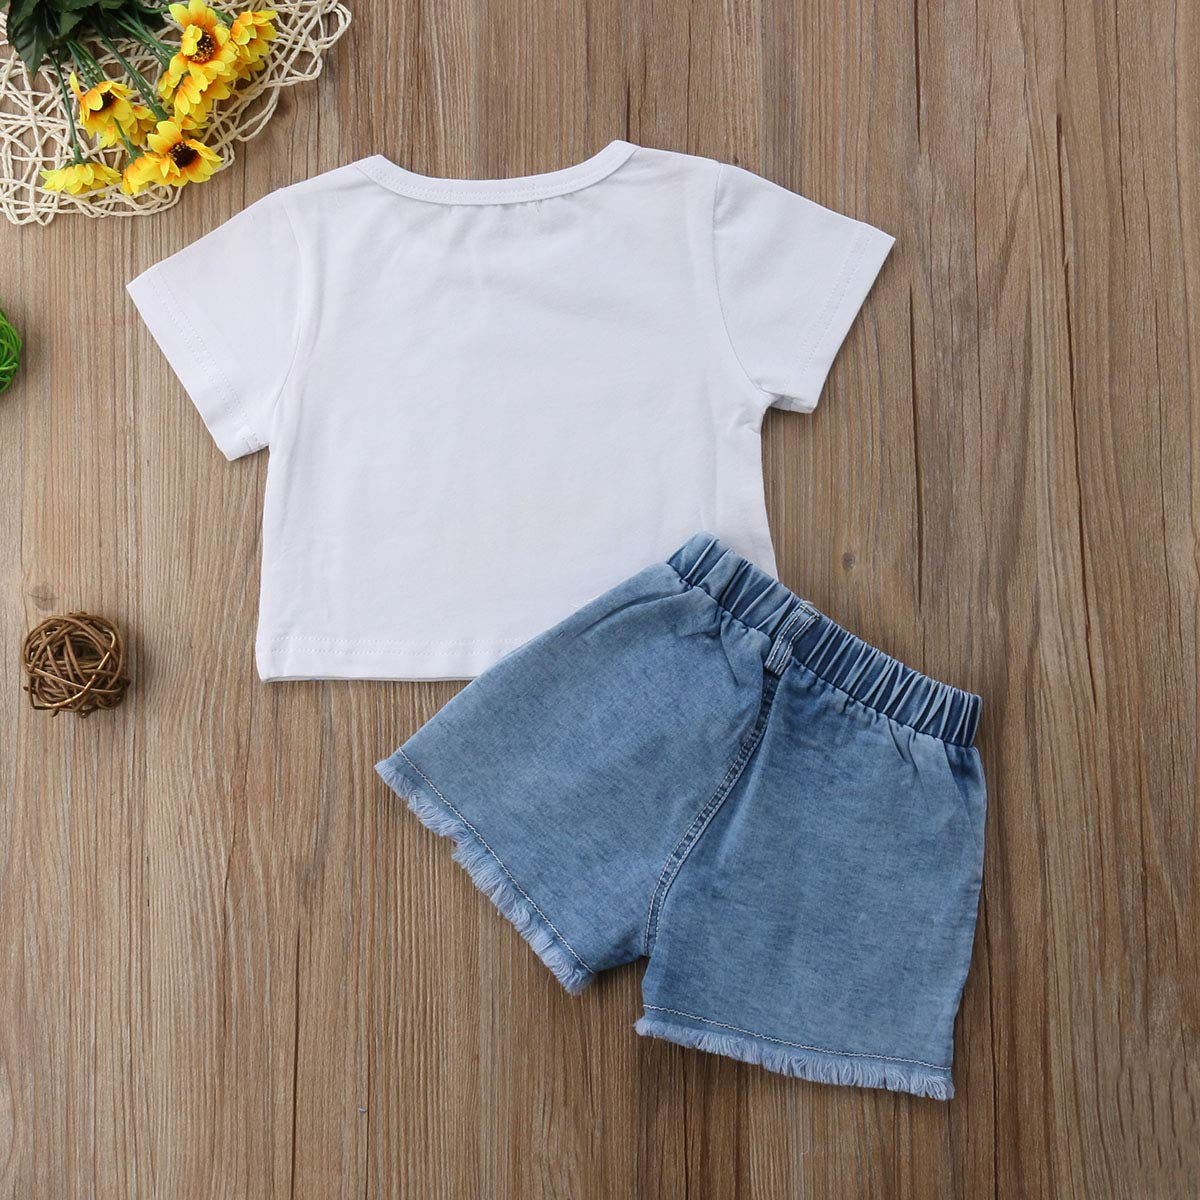 Toddler Baby Girl Summer Shorts Set Crop Tops T-Shirt Denim Pants 2Pcs Clothes Outfit